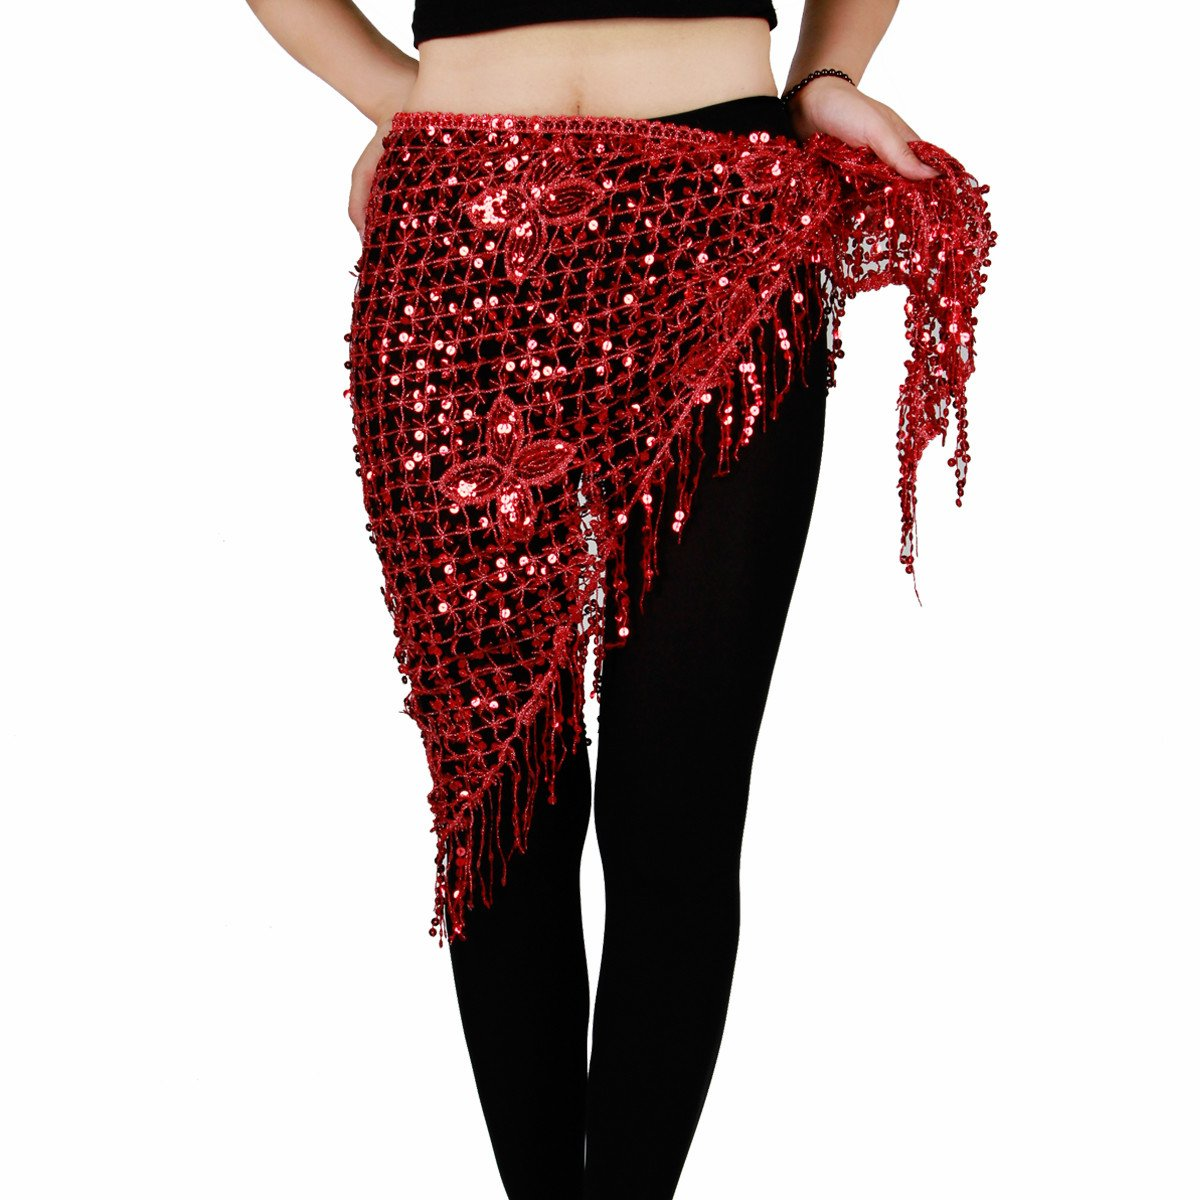 Belly Dance Hip Scarf - Hip Skirt Tassel Belts Triangle Shawl for Women(Fuchsia)